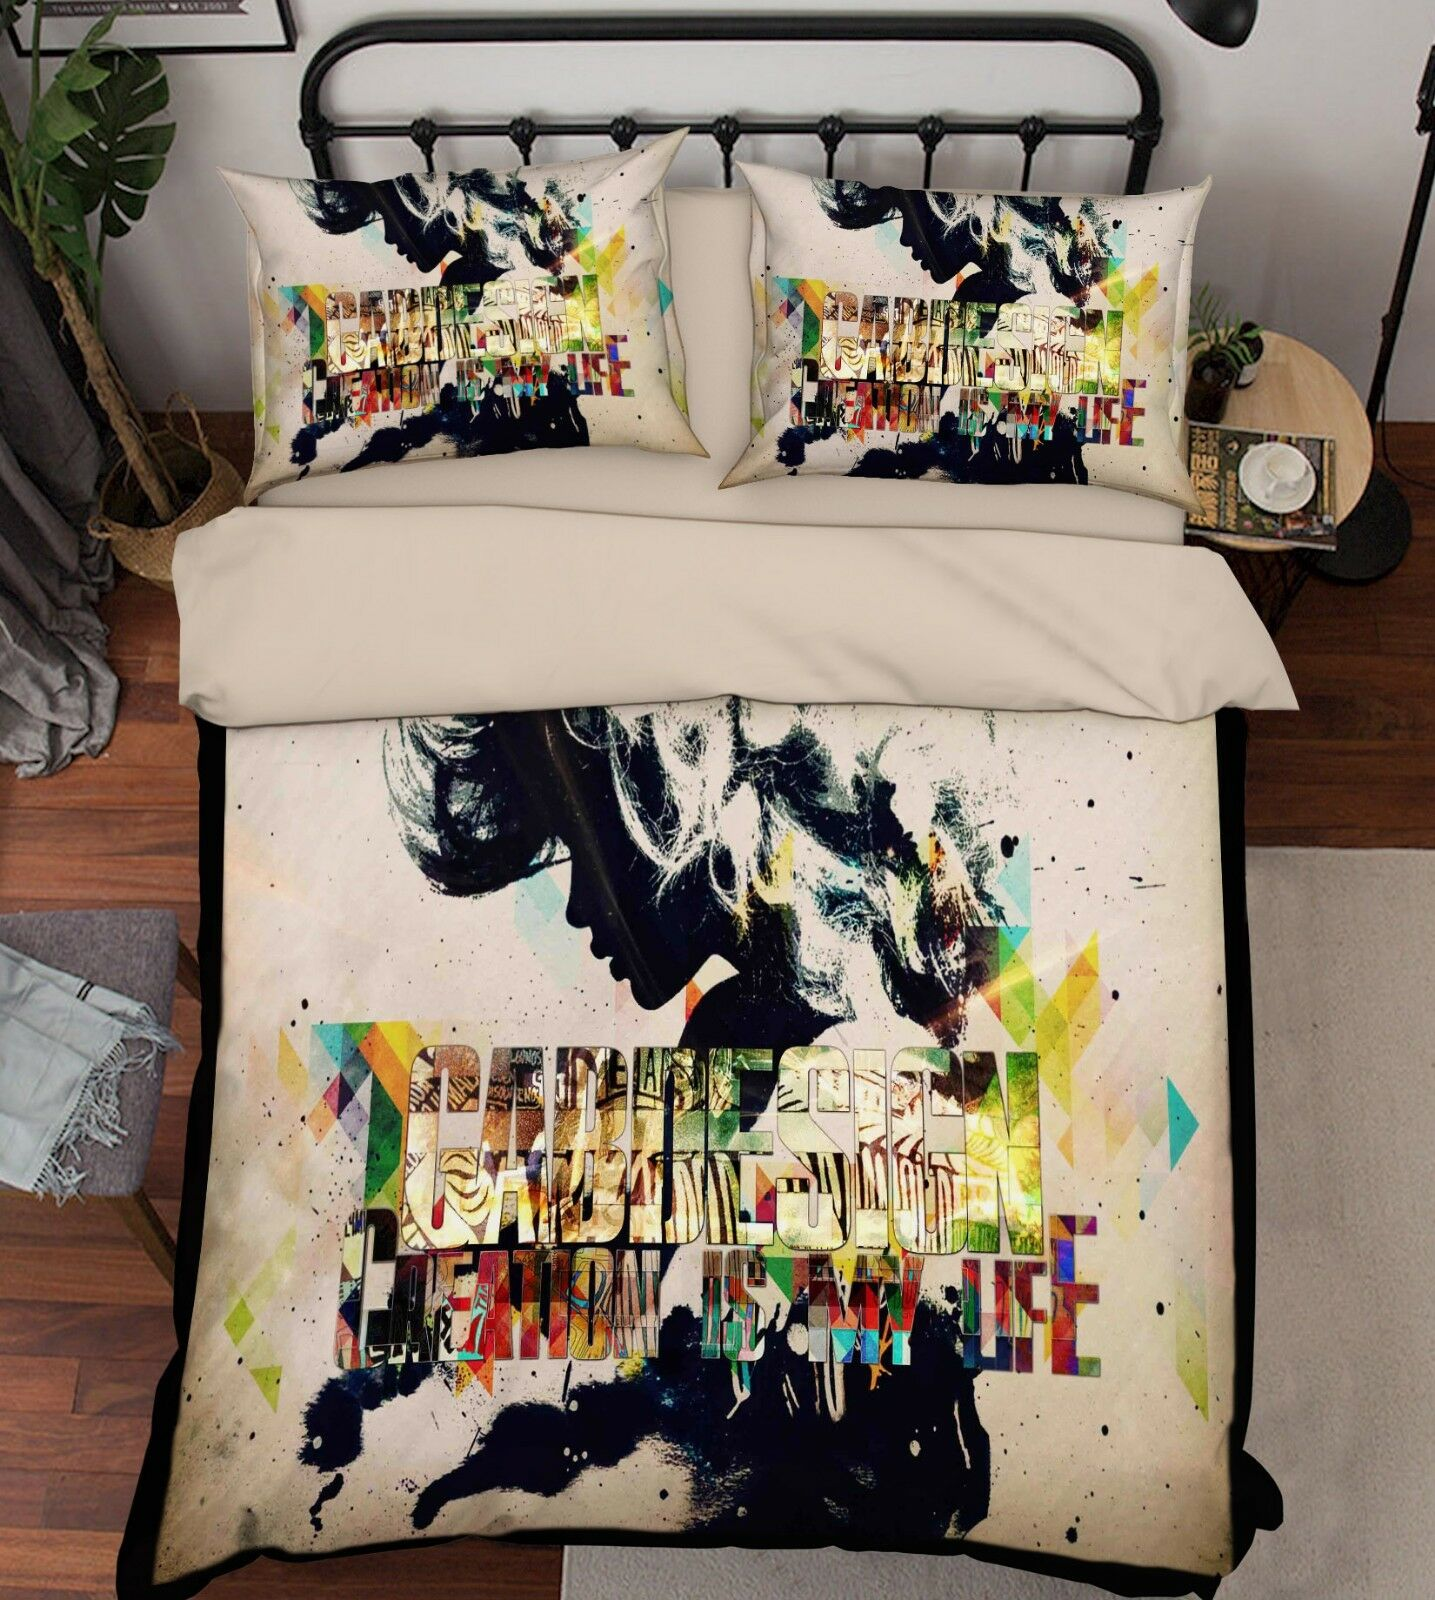 3D Painted Girl 789 Bed Pillowcases Quilt Duvet Cover Set Single Queen King CA